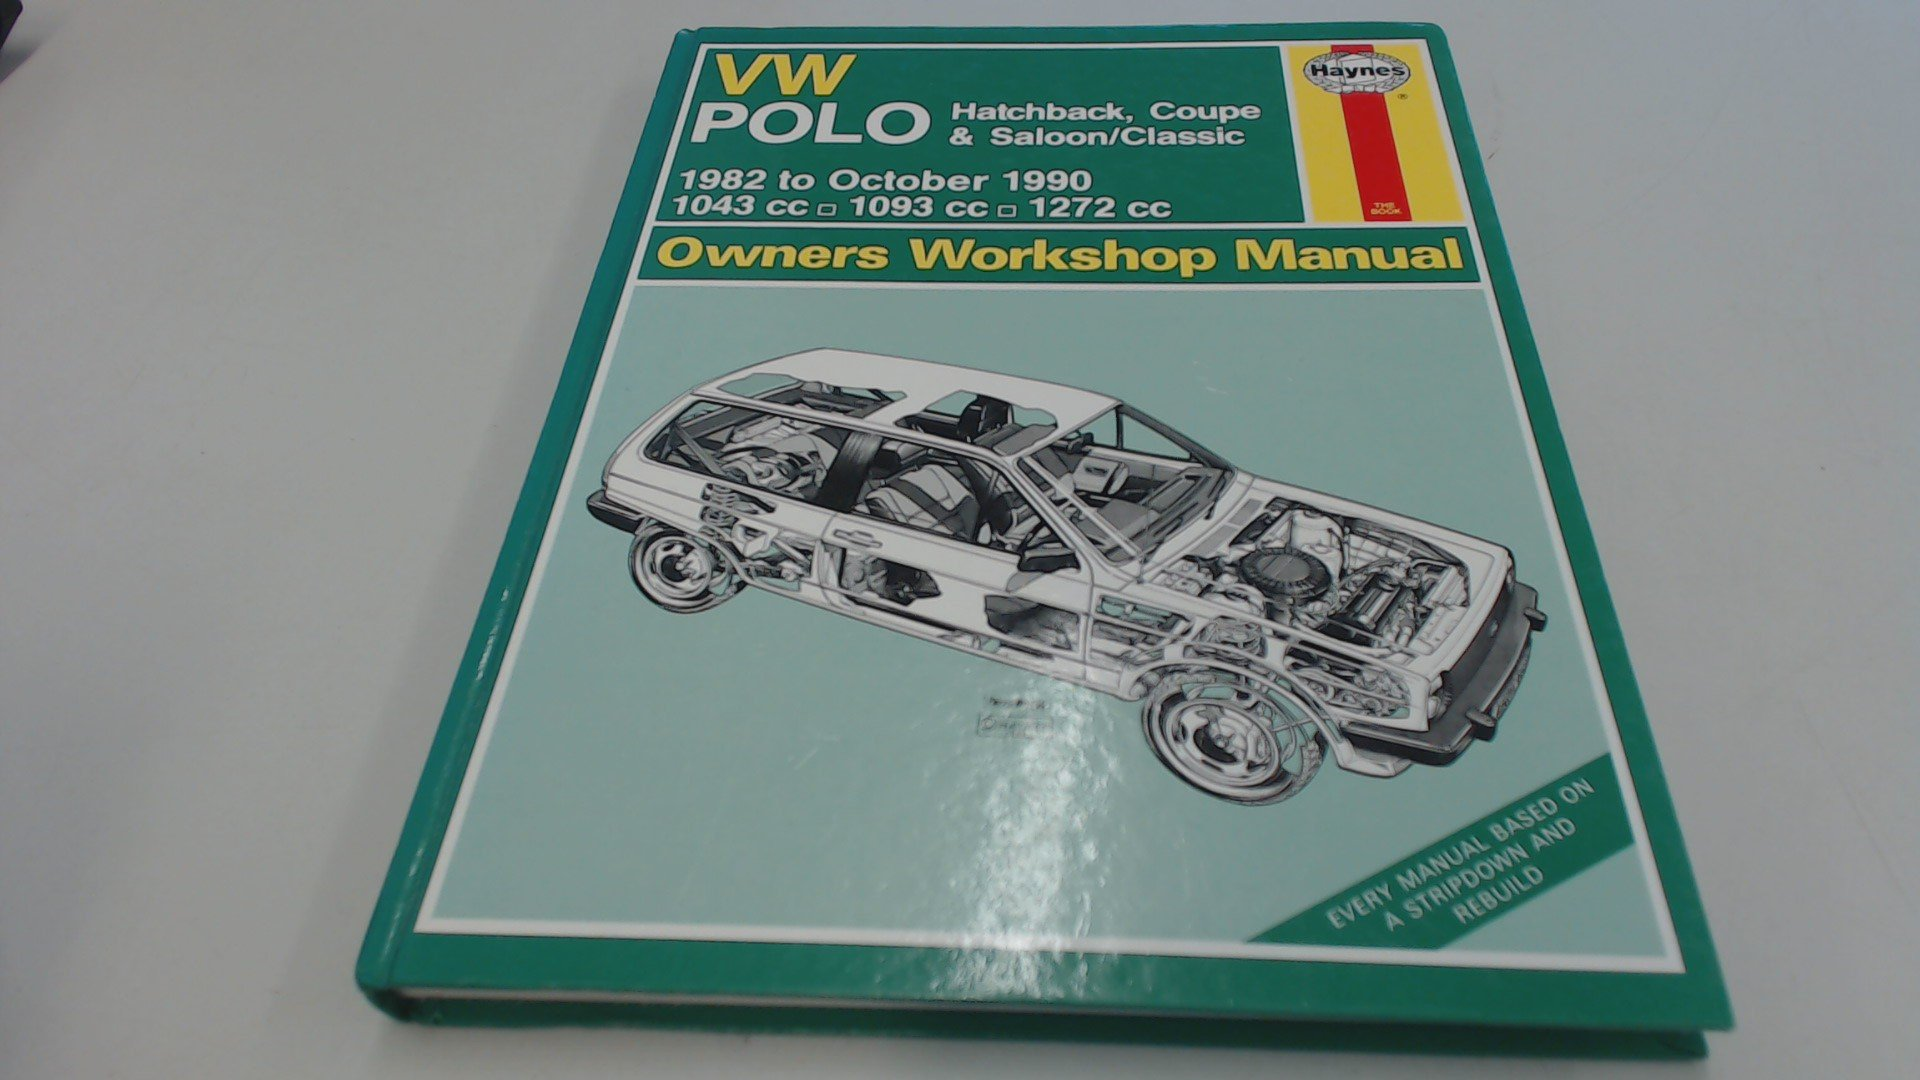 Vw Polo Car Manual Pin Ps3 Motherboard Layout Diagram1136 Diagram450 On Pinterest Array Volkswagen Owners Amazon Co Uk Rh